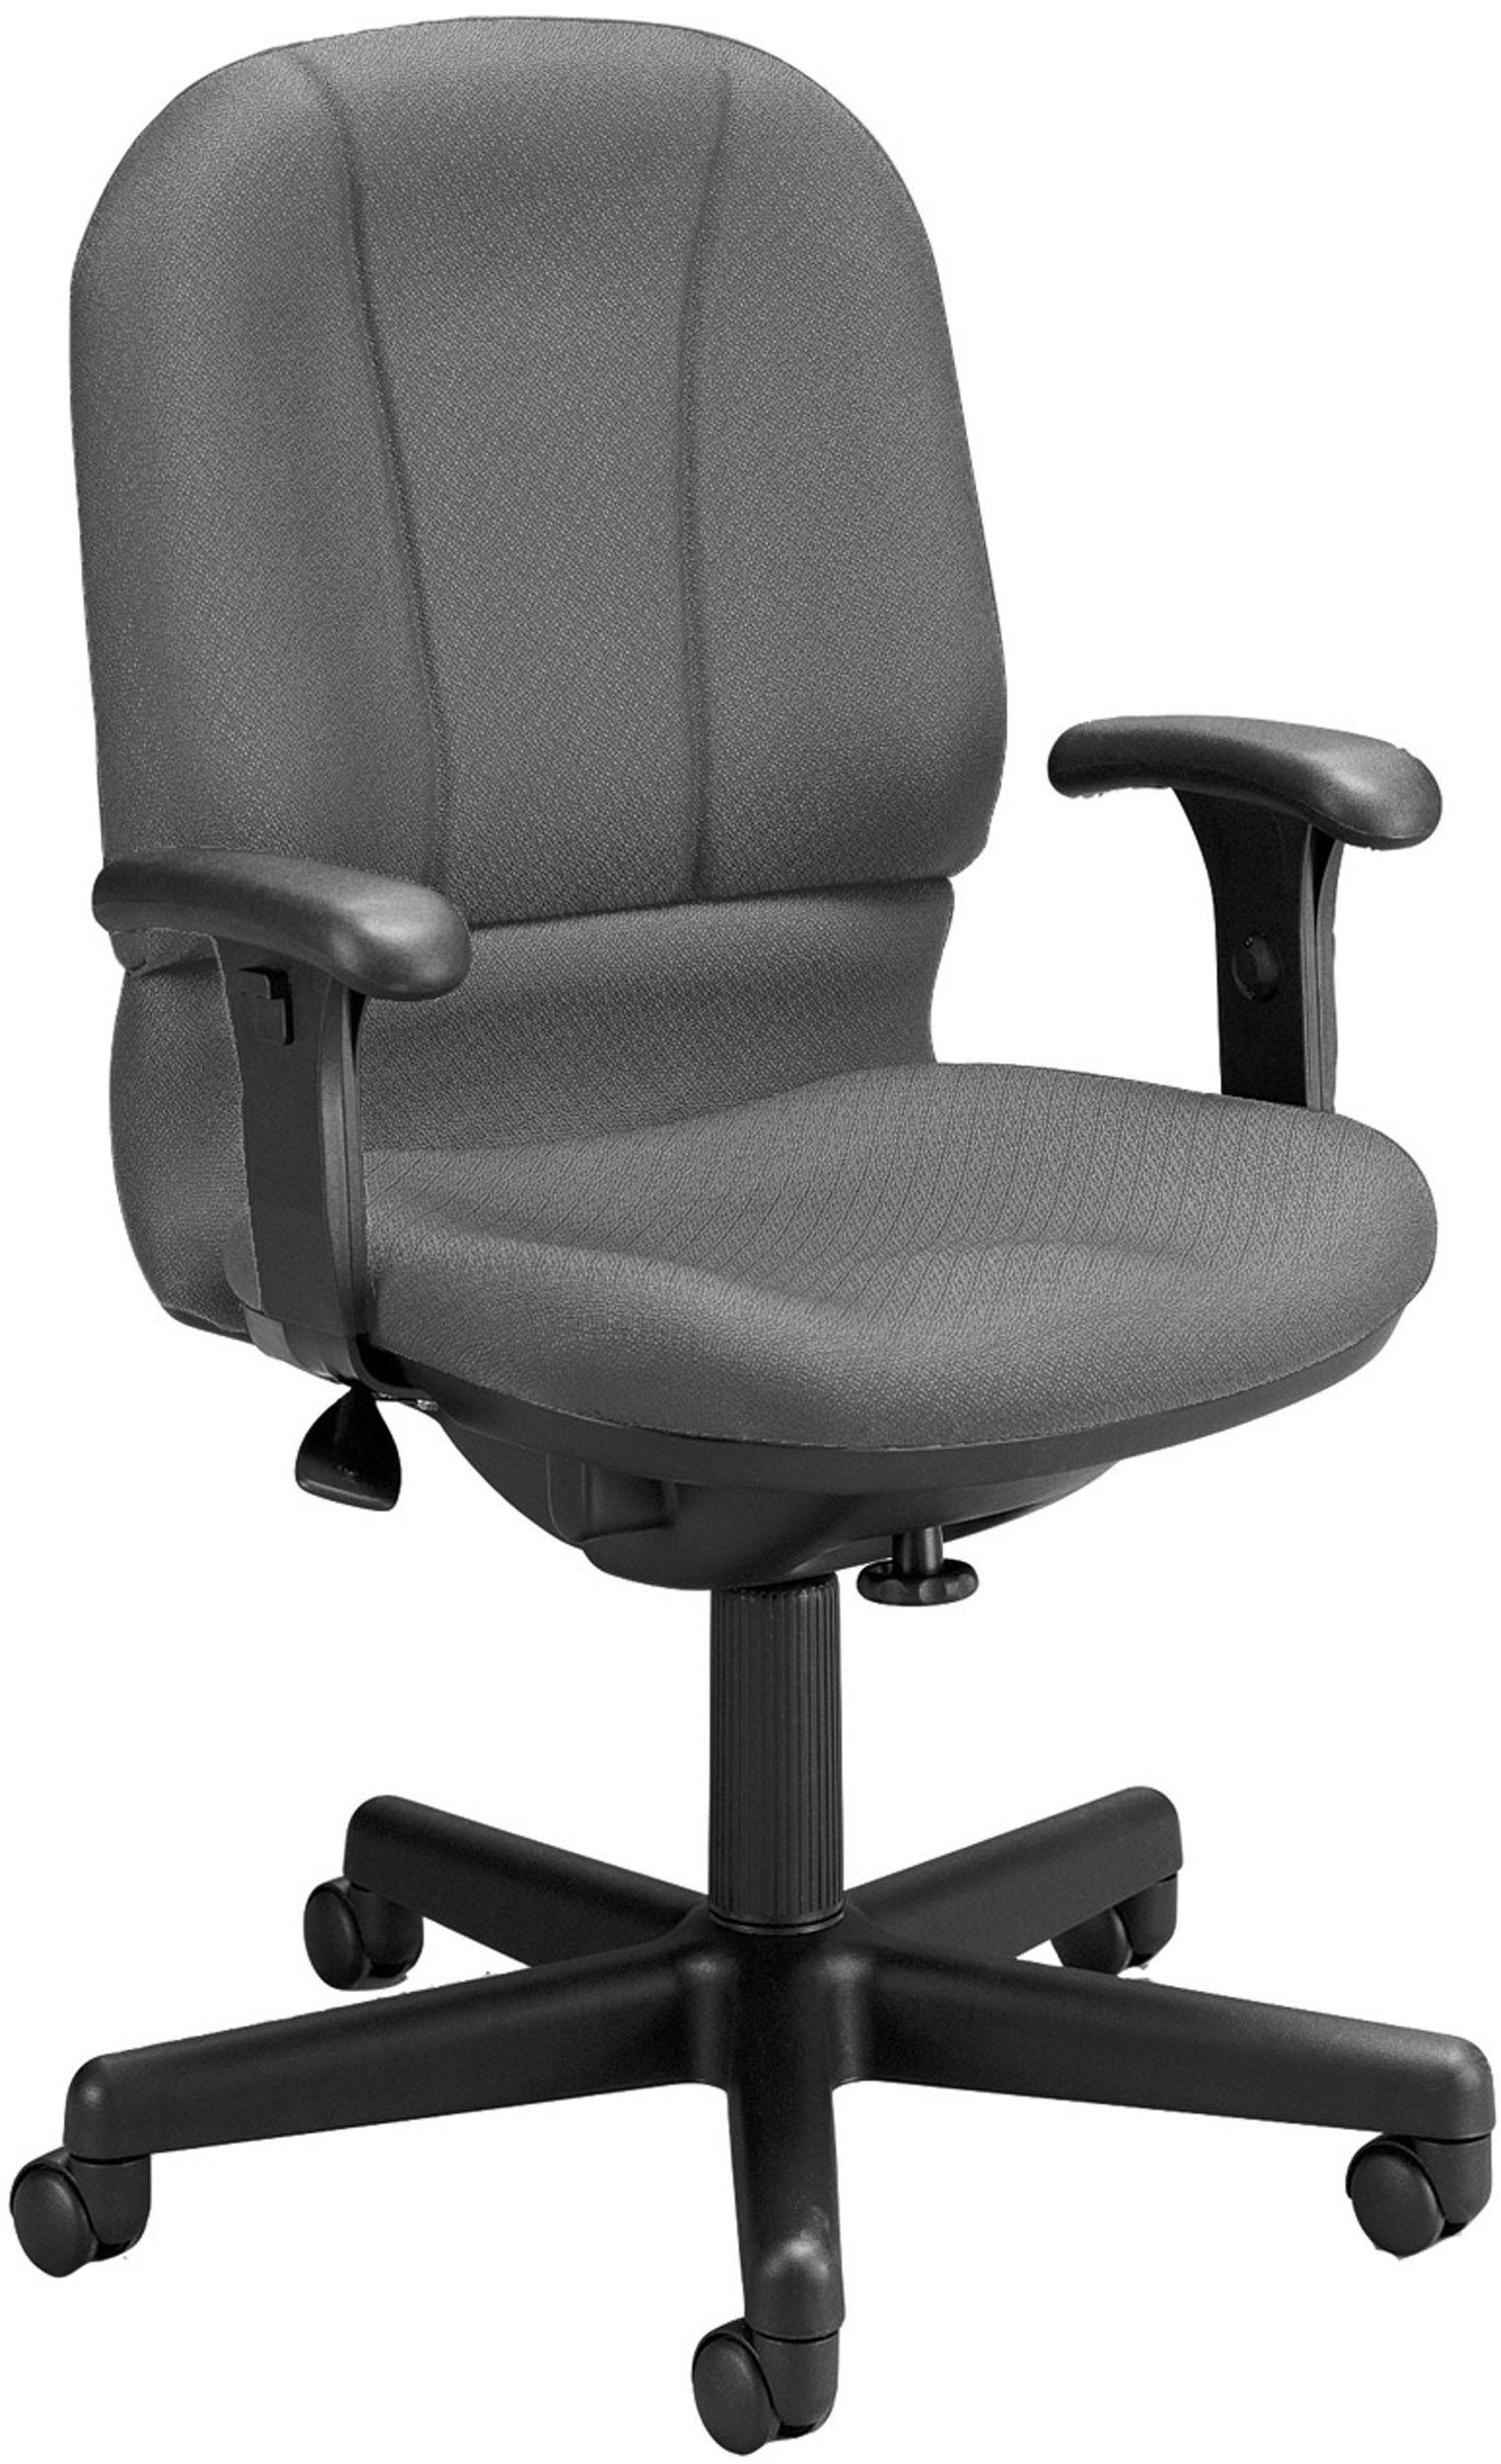 OFM 640239 Posture Series Task Chair, Gray ** For more